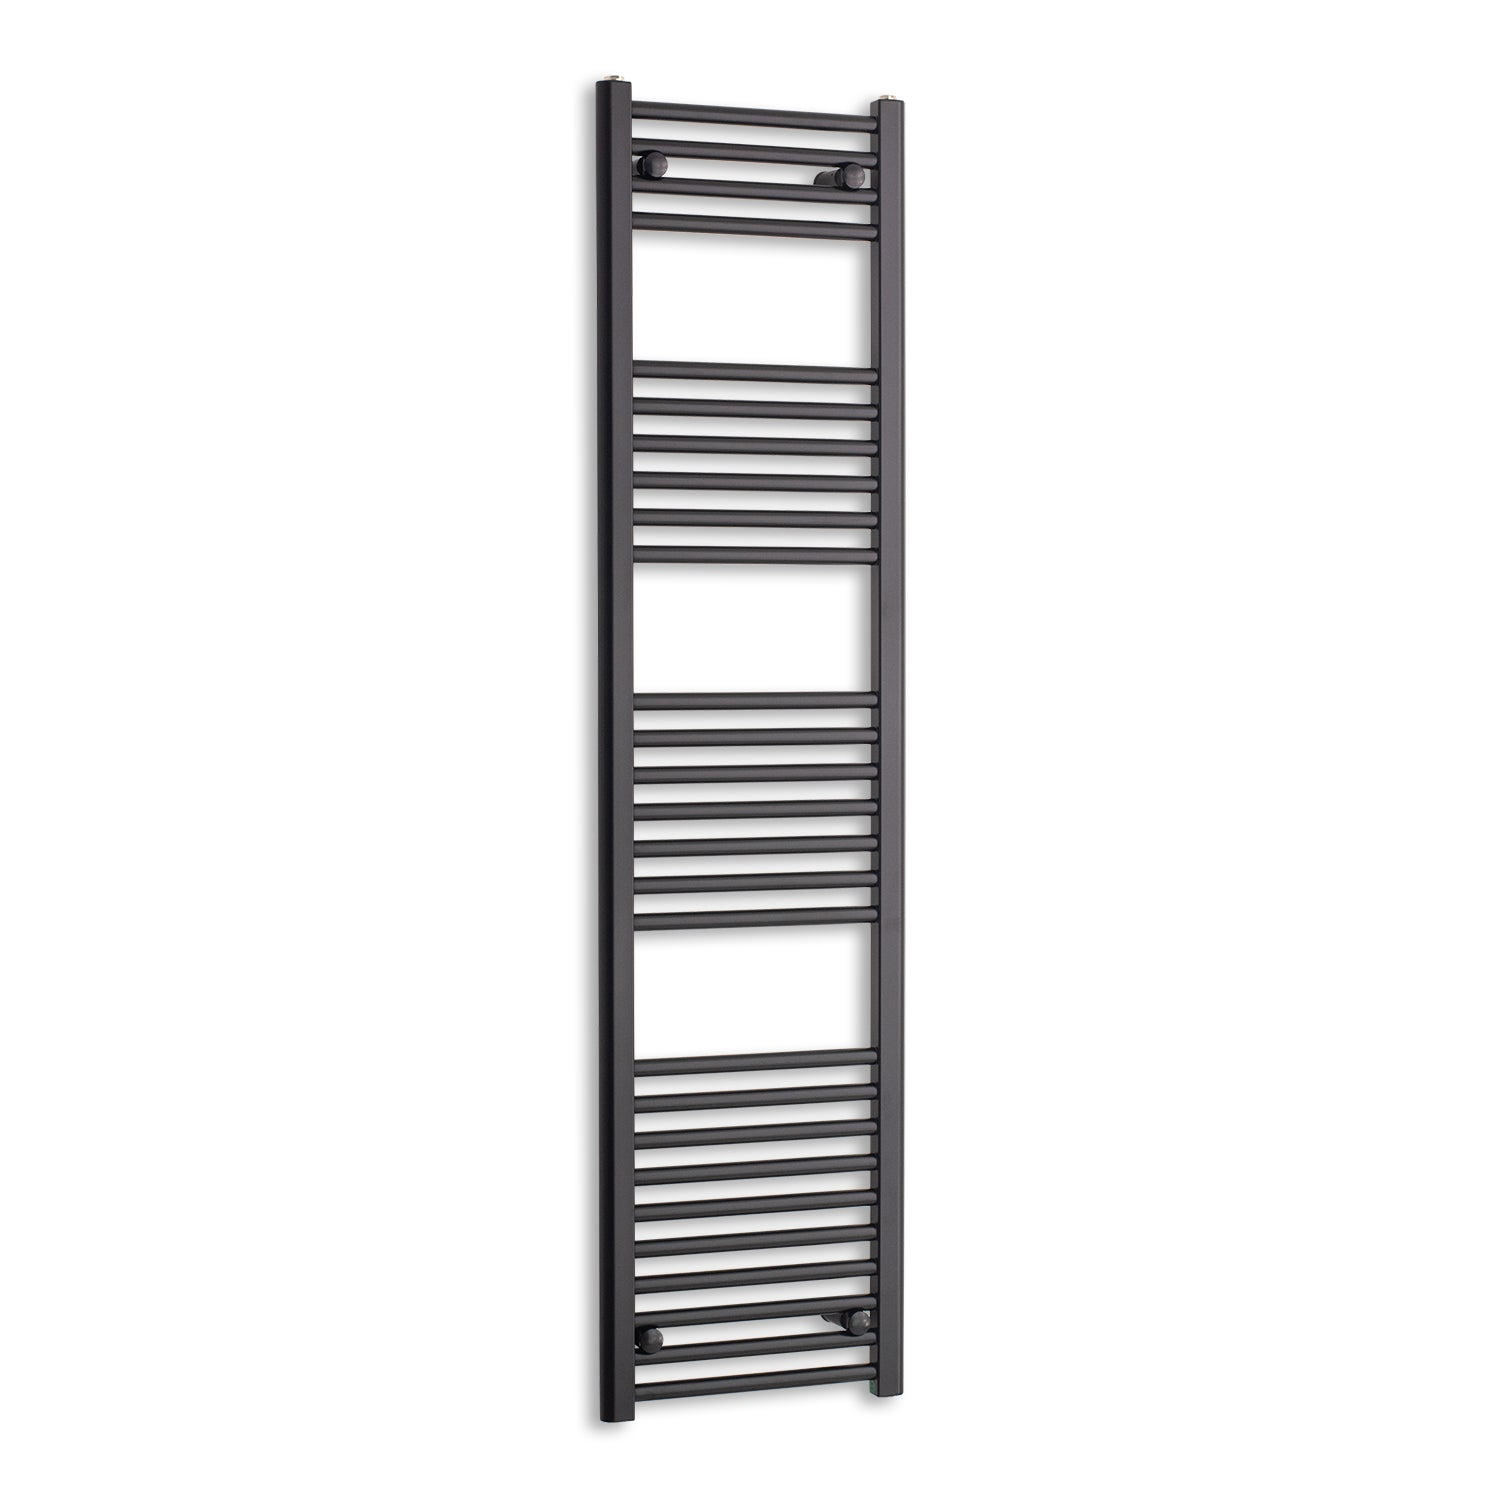 400mm Wide 1600mm High Flat Black Heated Towel Rail Radiator,Towel Rail Only